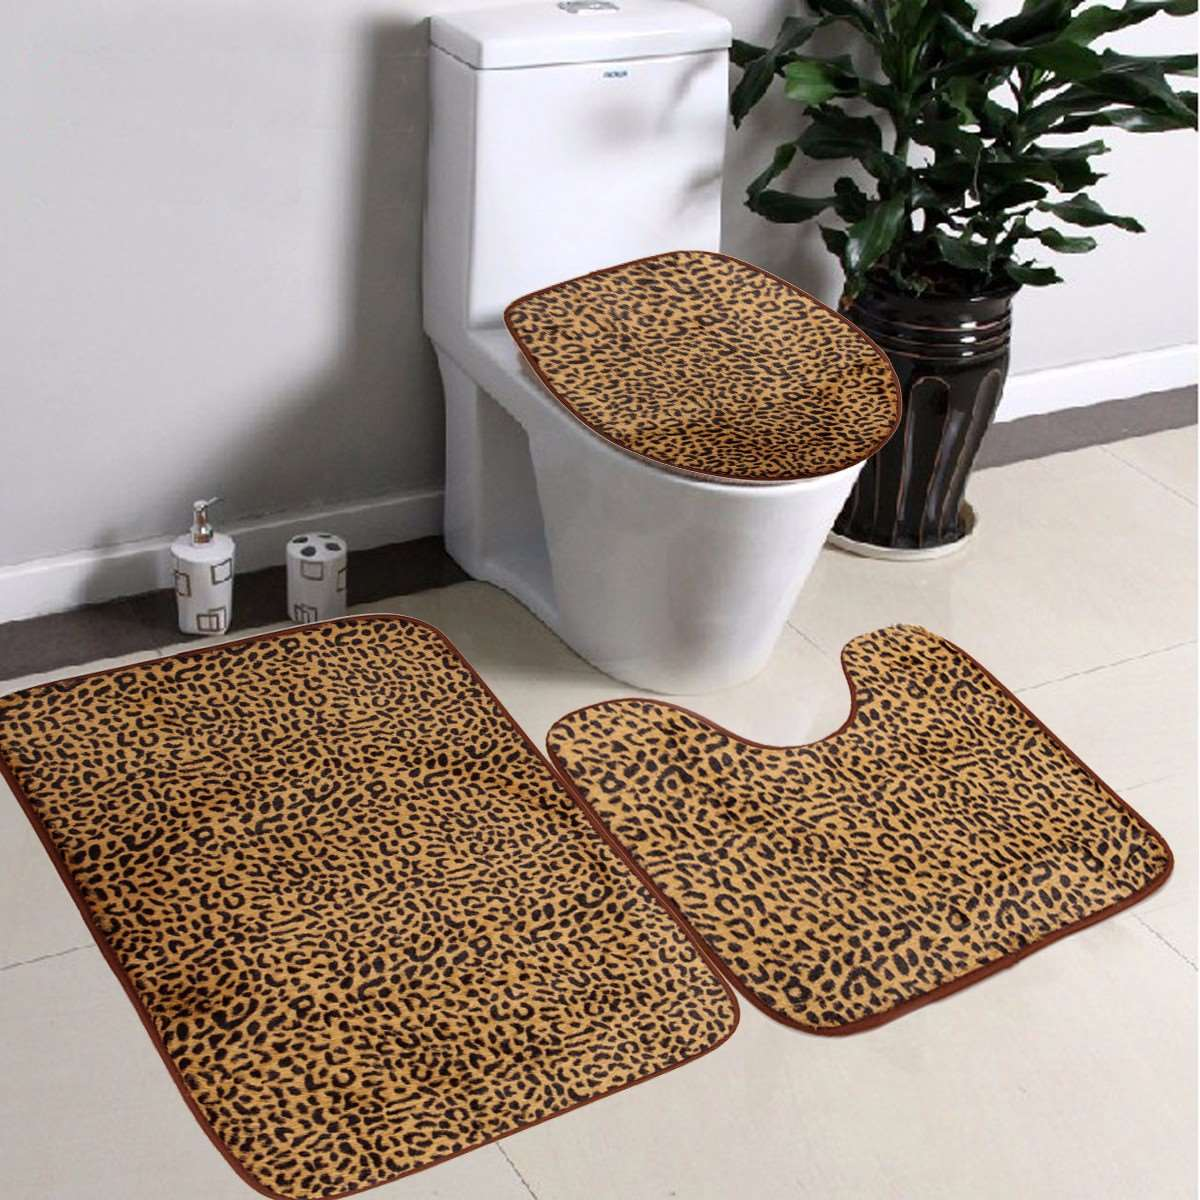 Hotel Bath Mats Promotion For Promotional On